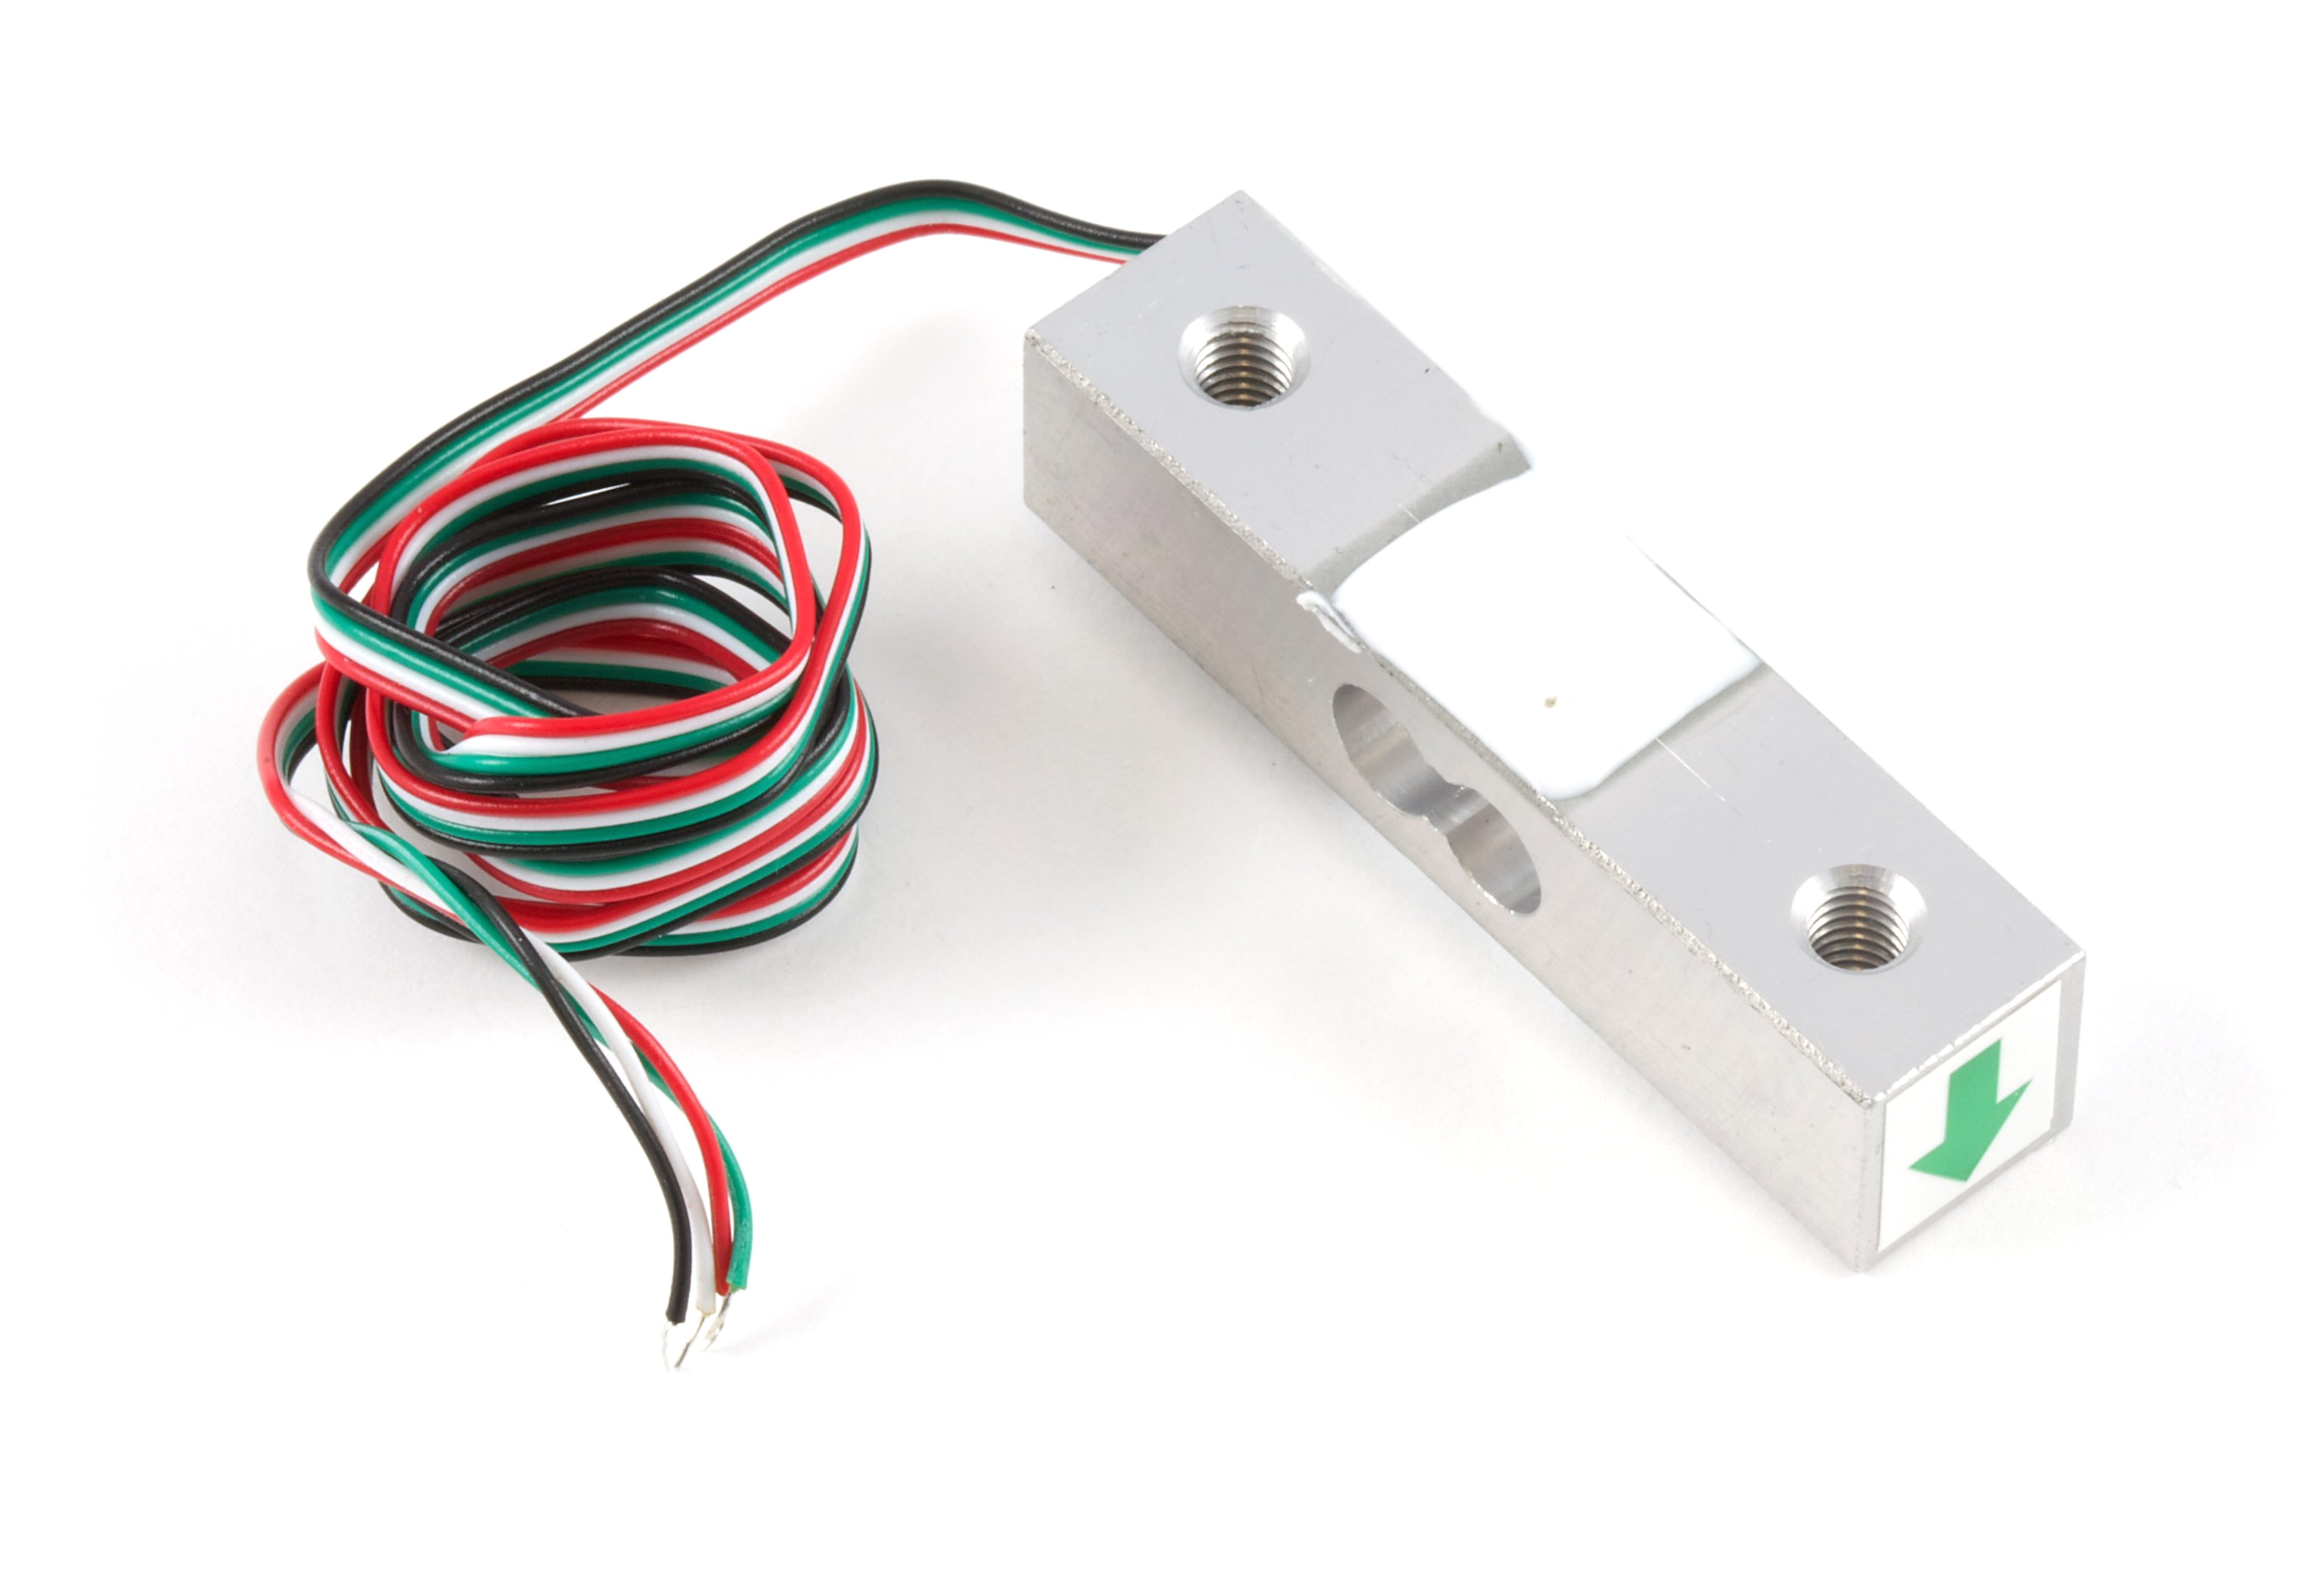 50kg shear load cell